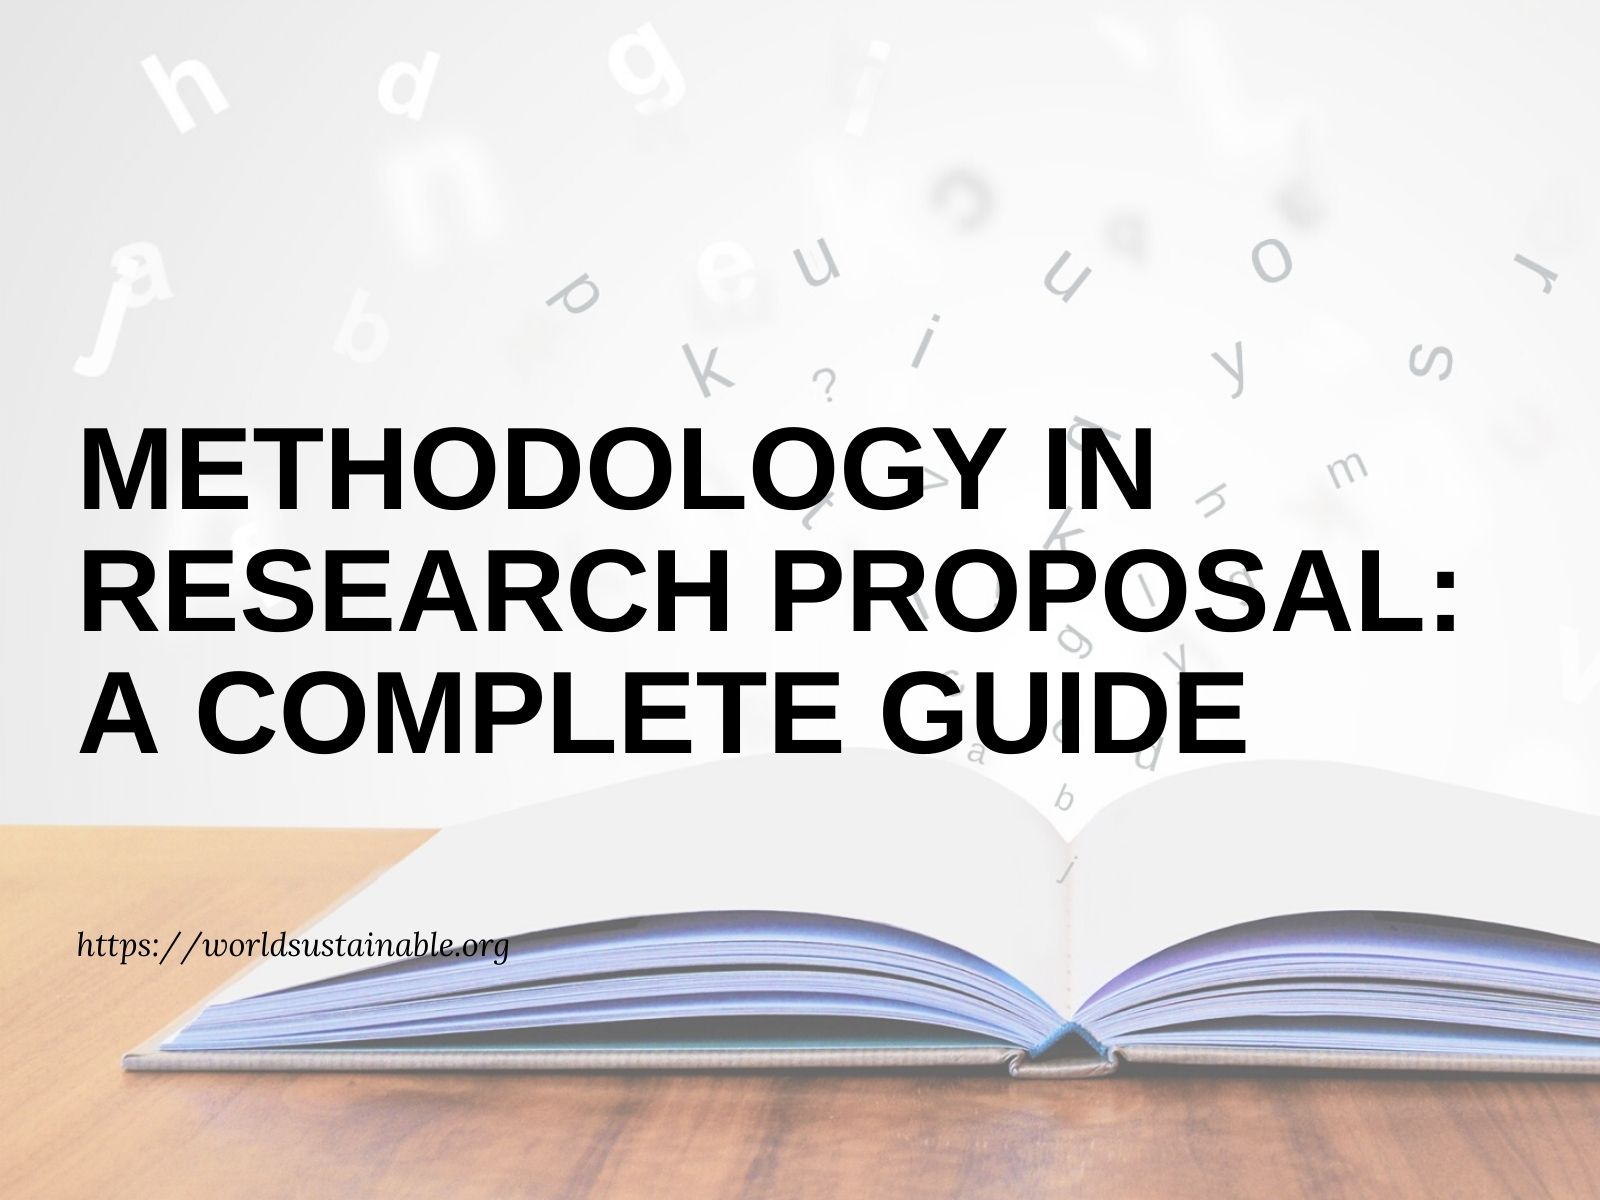 methodology-in-research-proposal-guide